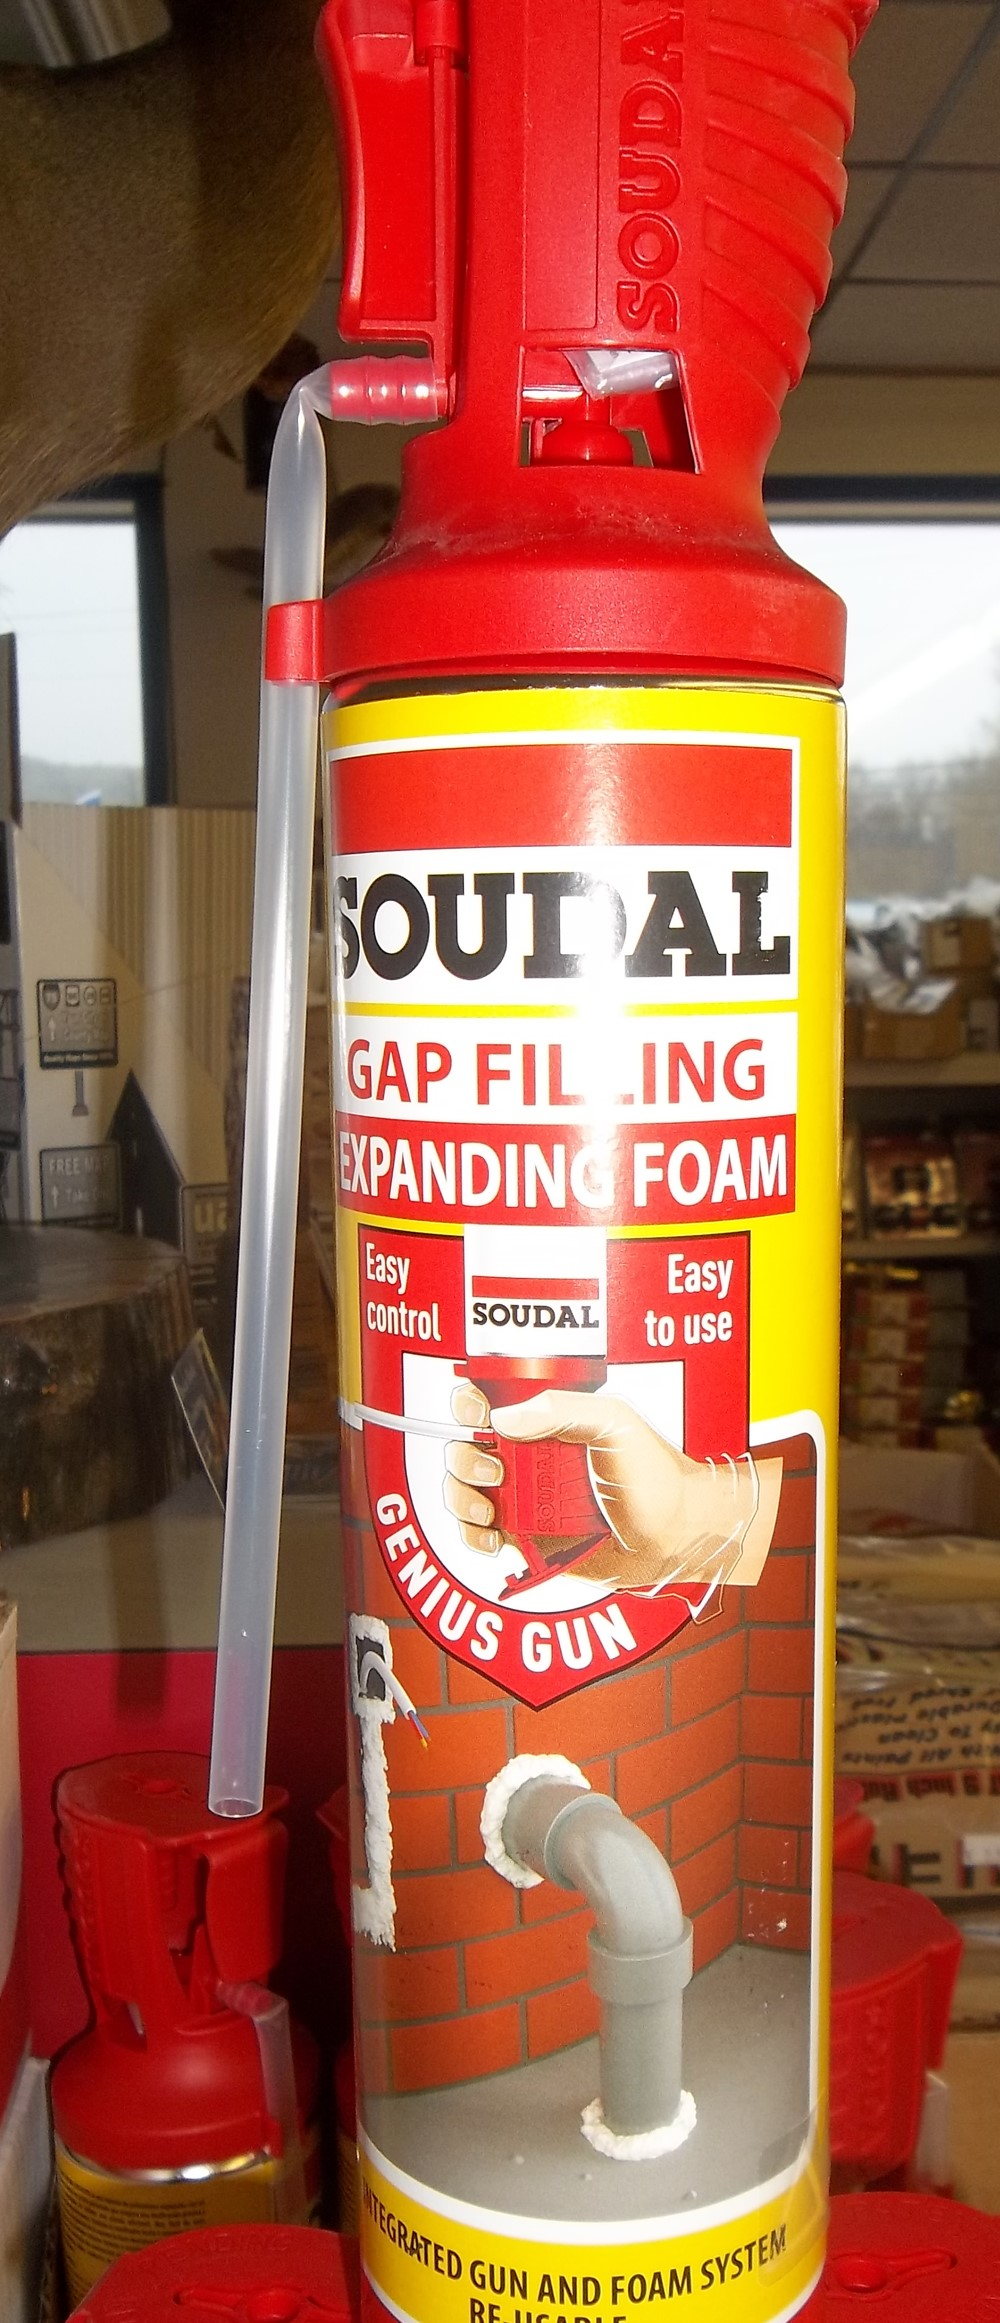 Gap Filling Expanding Foam $7.99  20oz.